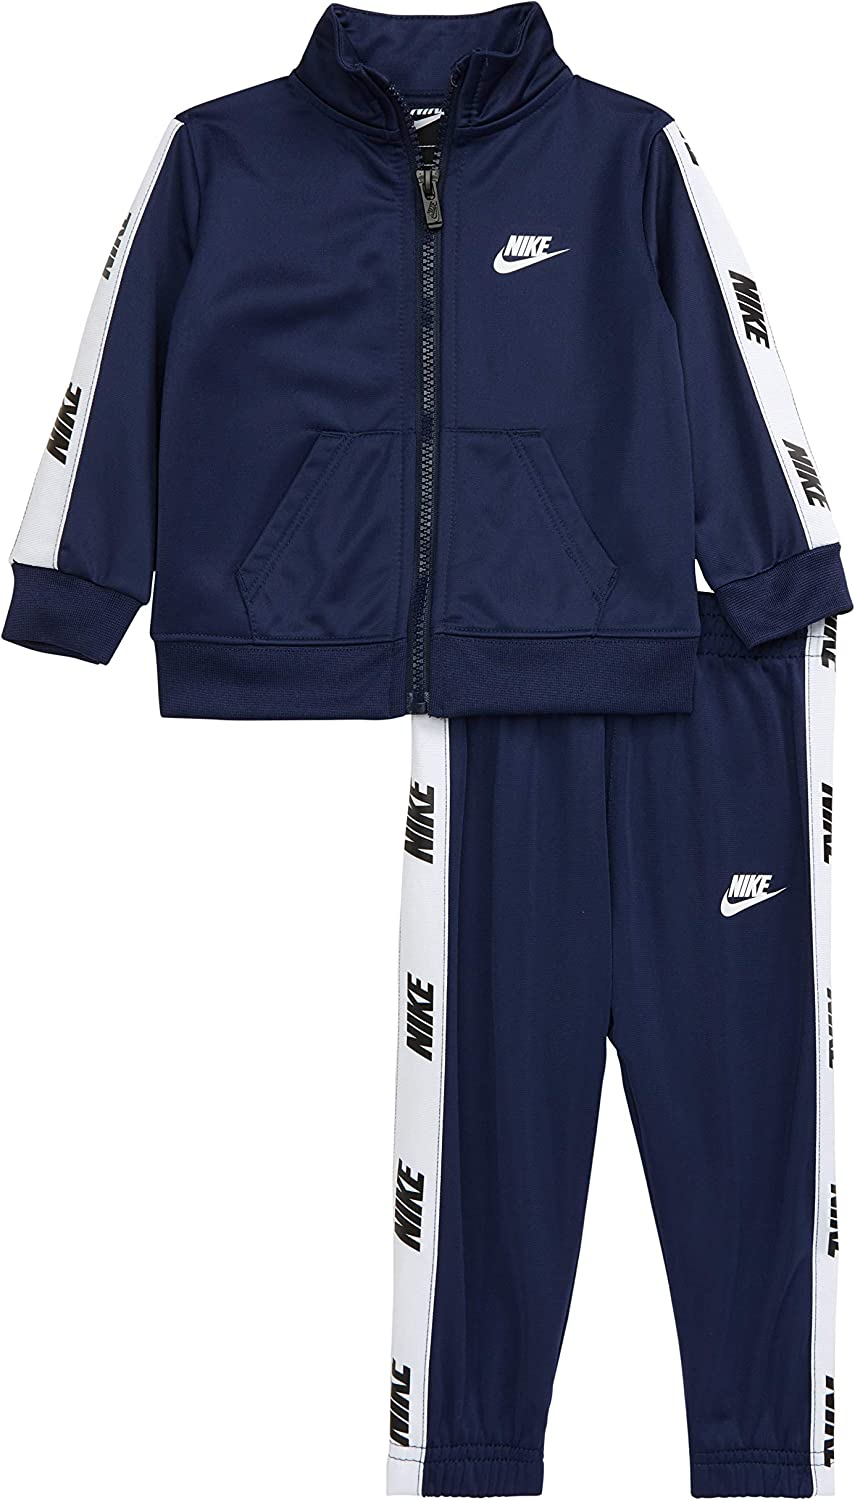 Nike Baby Boys' 2-Piece Tracksuit Outfit